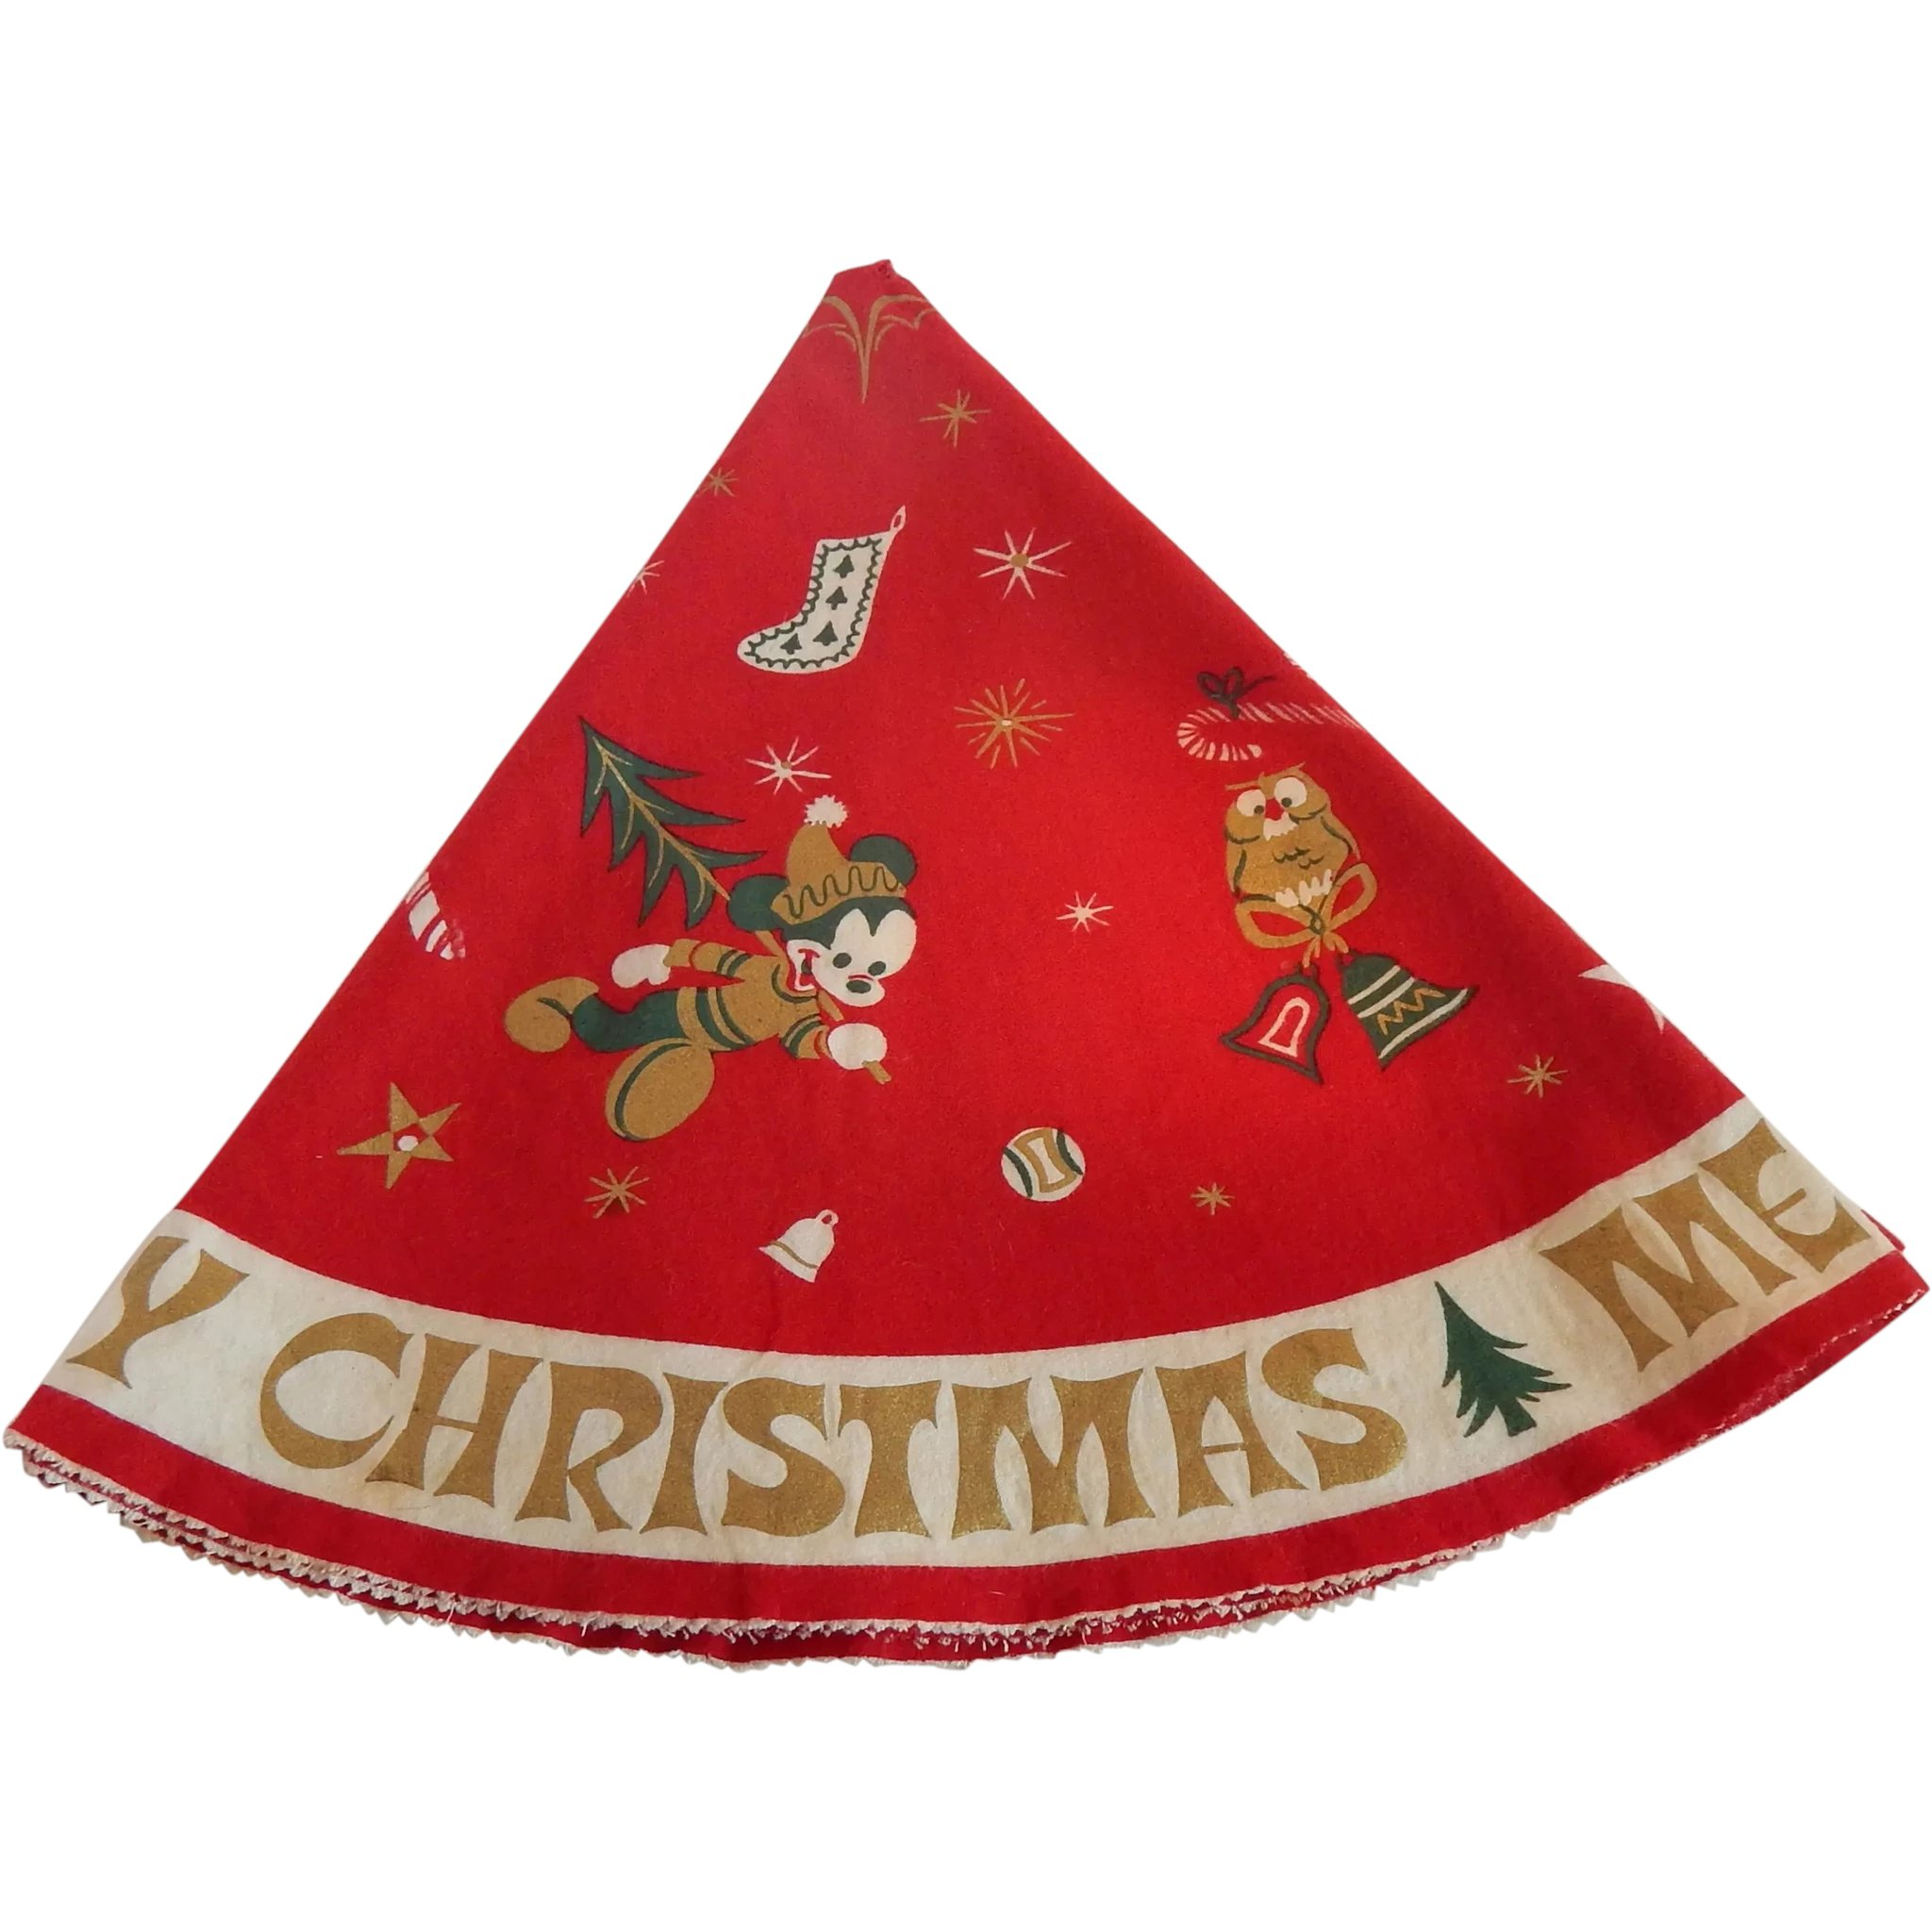 Vintage Disney Christmas Tree Skirt Colemans Collectibles Ruby Lane